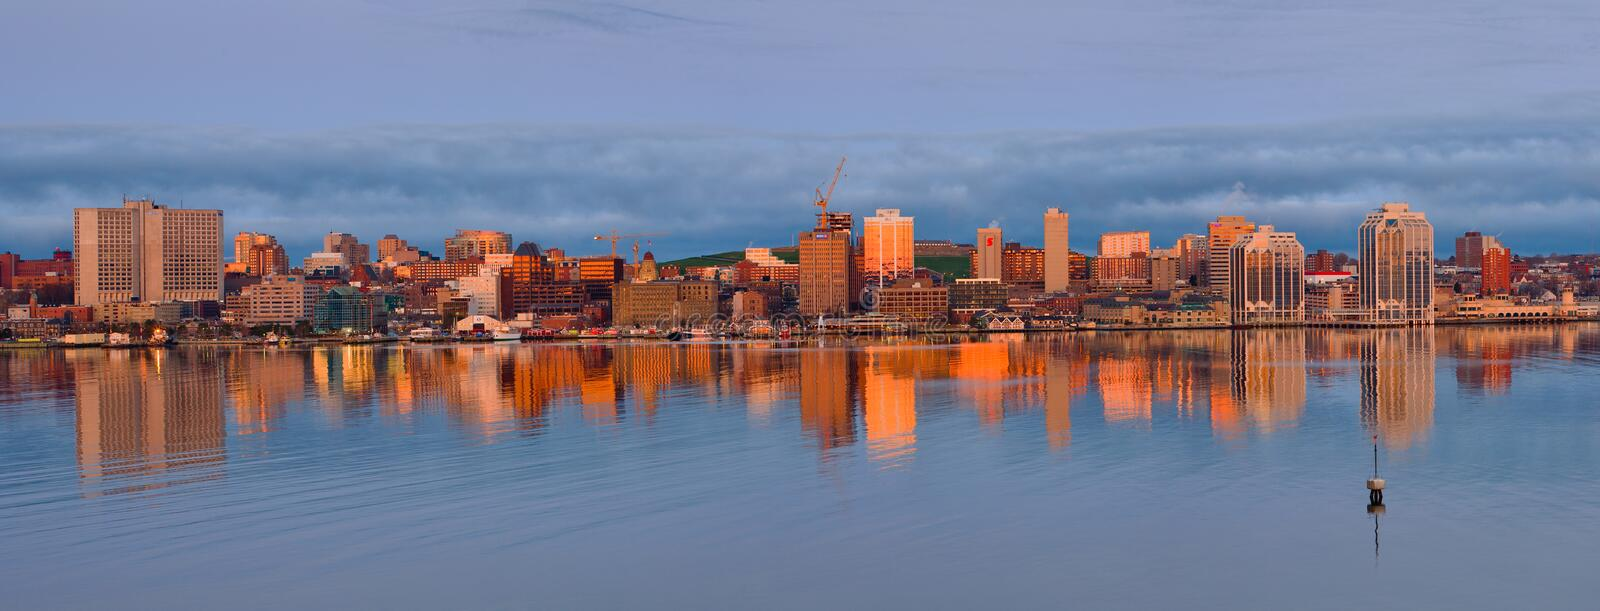 Halifax, Nova Scotia Skyline At Daybreak royalty-vrije stock afbeeldingen